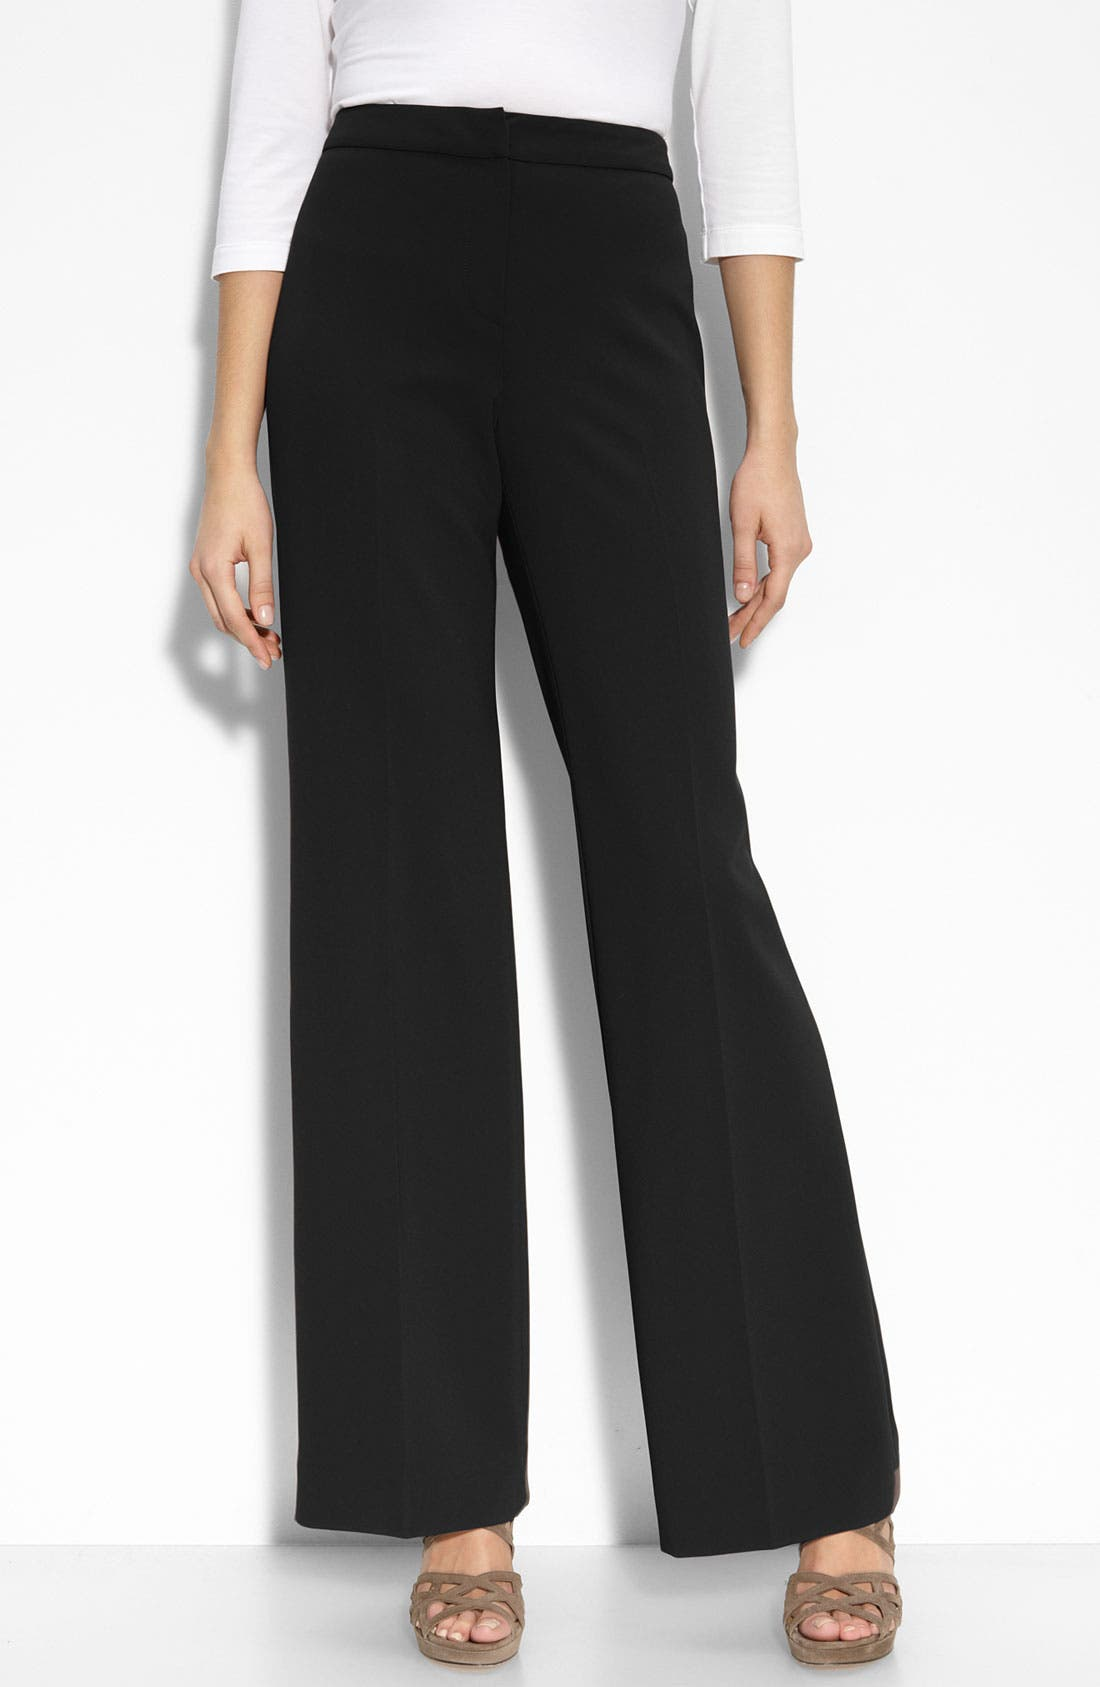 Main Image - St. John Collection 'Diana' Stretch Woven Pants